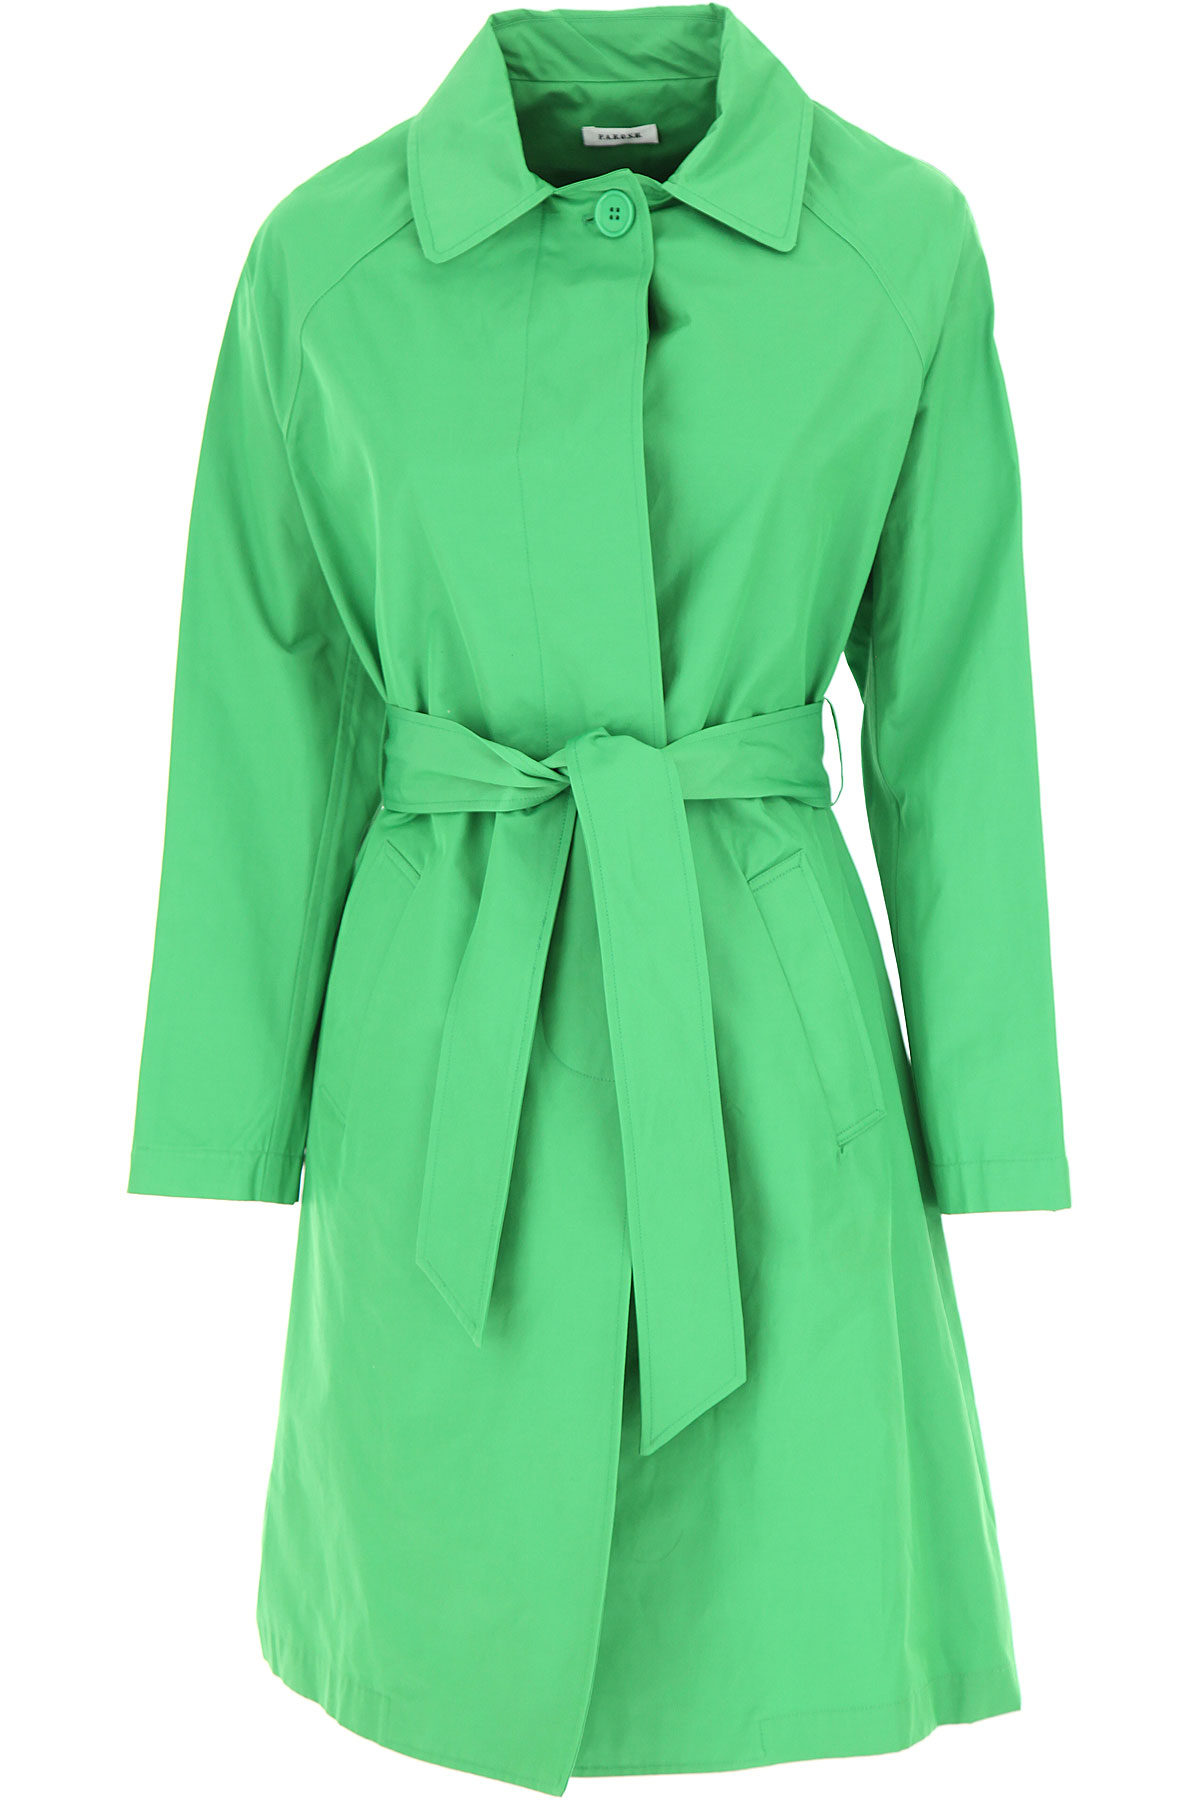 P.A.R.O.S.H. Jacket for Women On Sale, Green, Cotton, 2019, 4 6